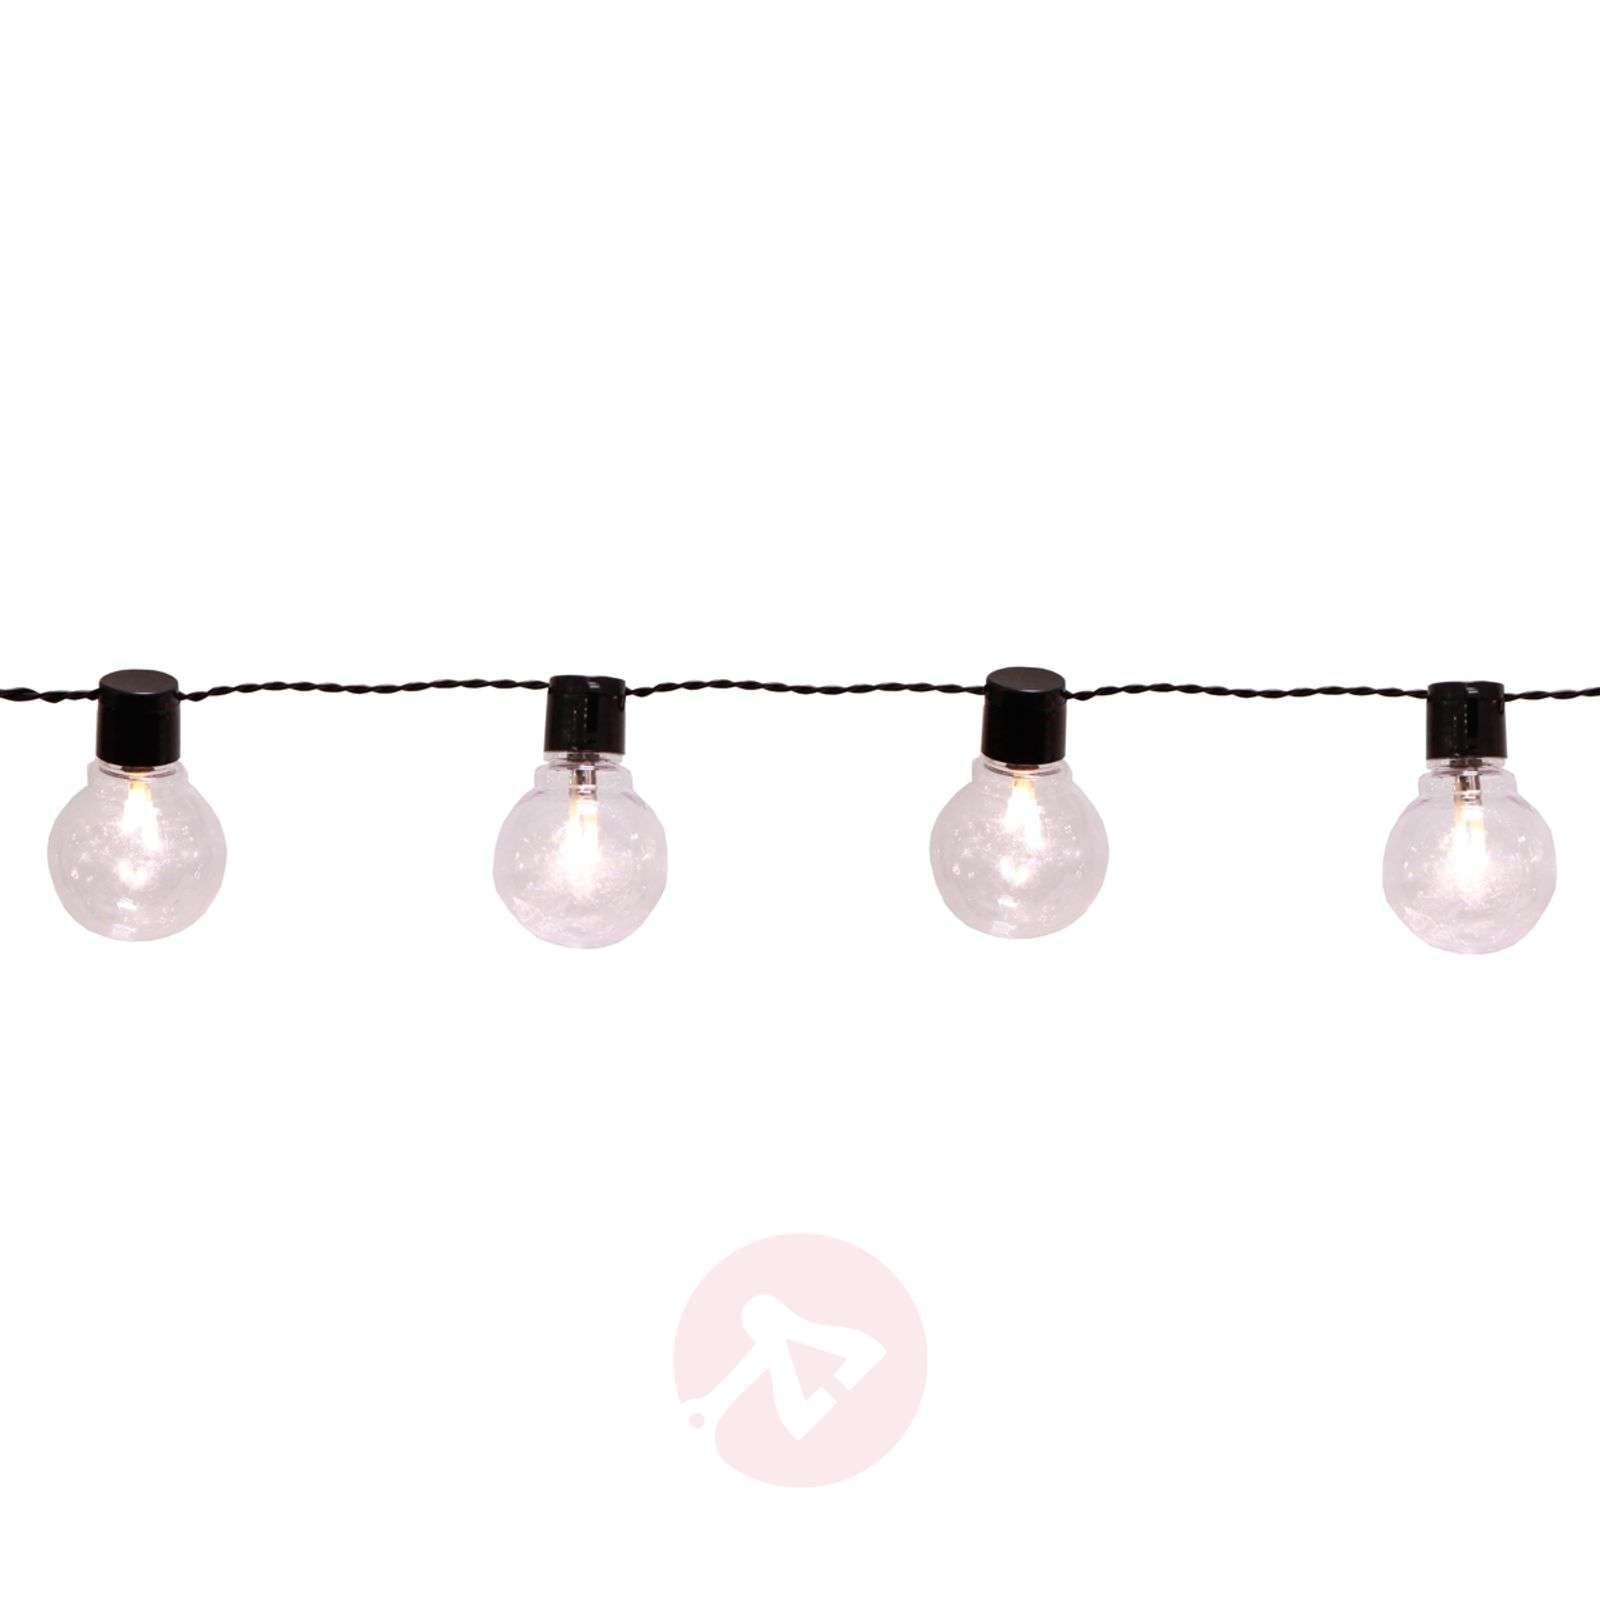 Lichtketting voor buiten LED Party Lights-1522847-01